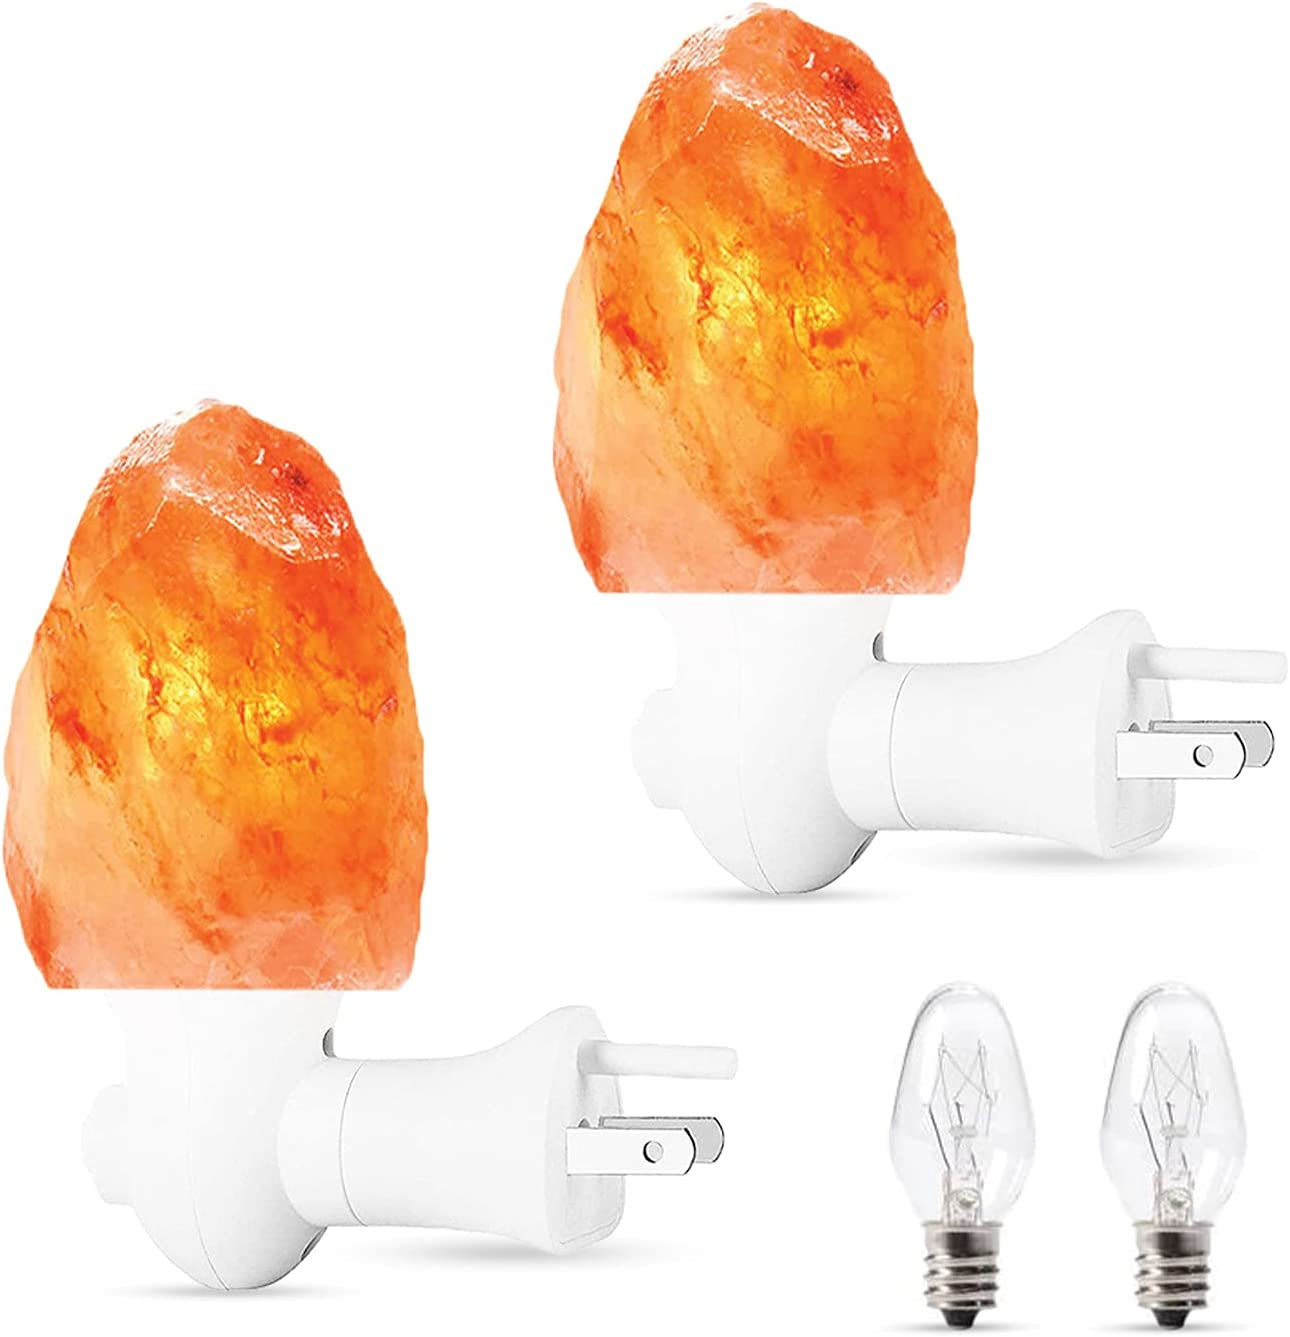 NEXTGRADE 100% Authentic 2 Pack Himalayan Salt Lamp Night Light - Hand Carved Natural Pink Crystal Rock Salt from The Himalayas, ETL Listed 360 Rotatable Wall Plug, for Bedroom Decor; 2 Extra Bulbs